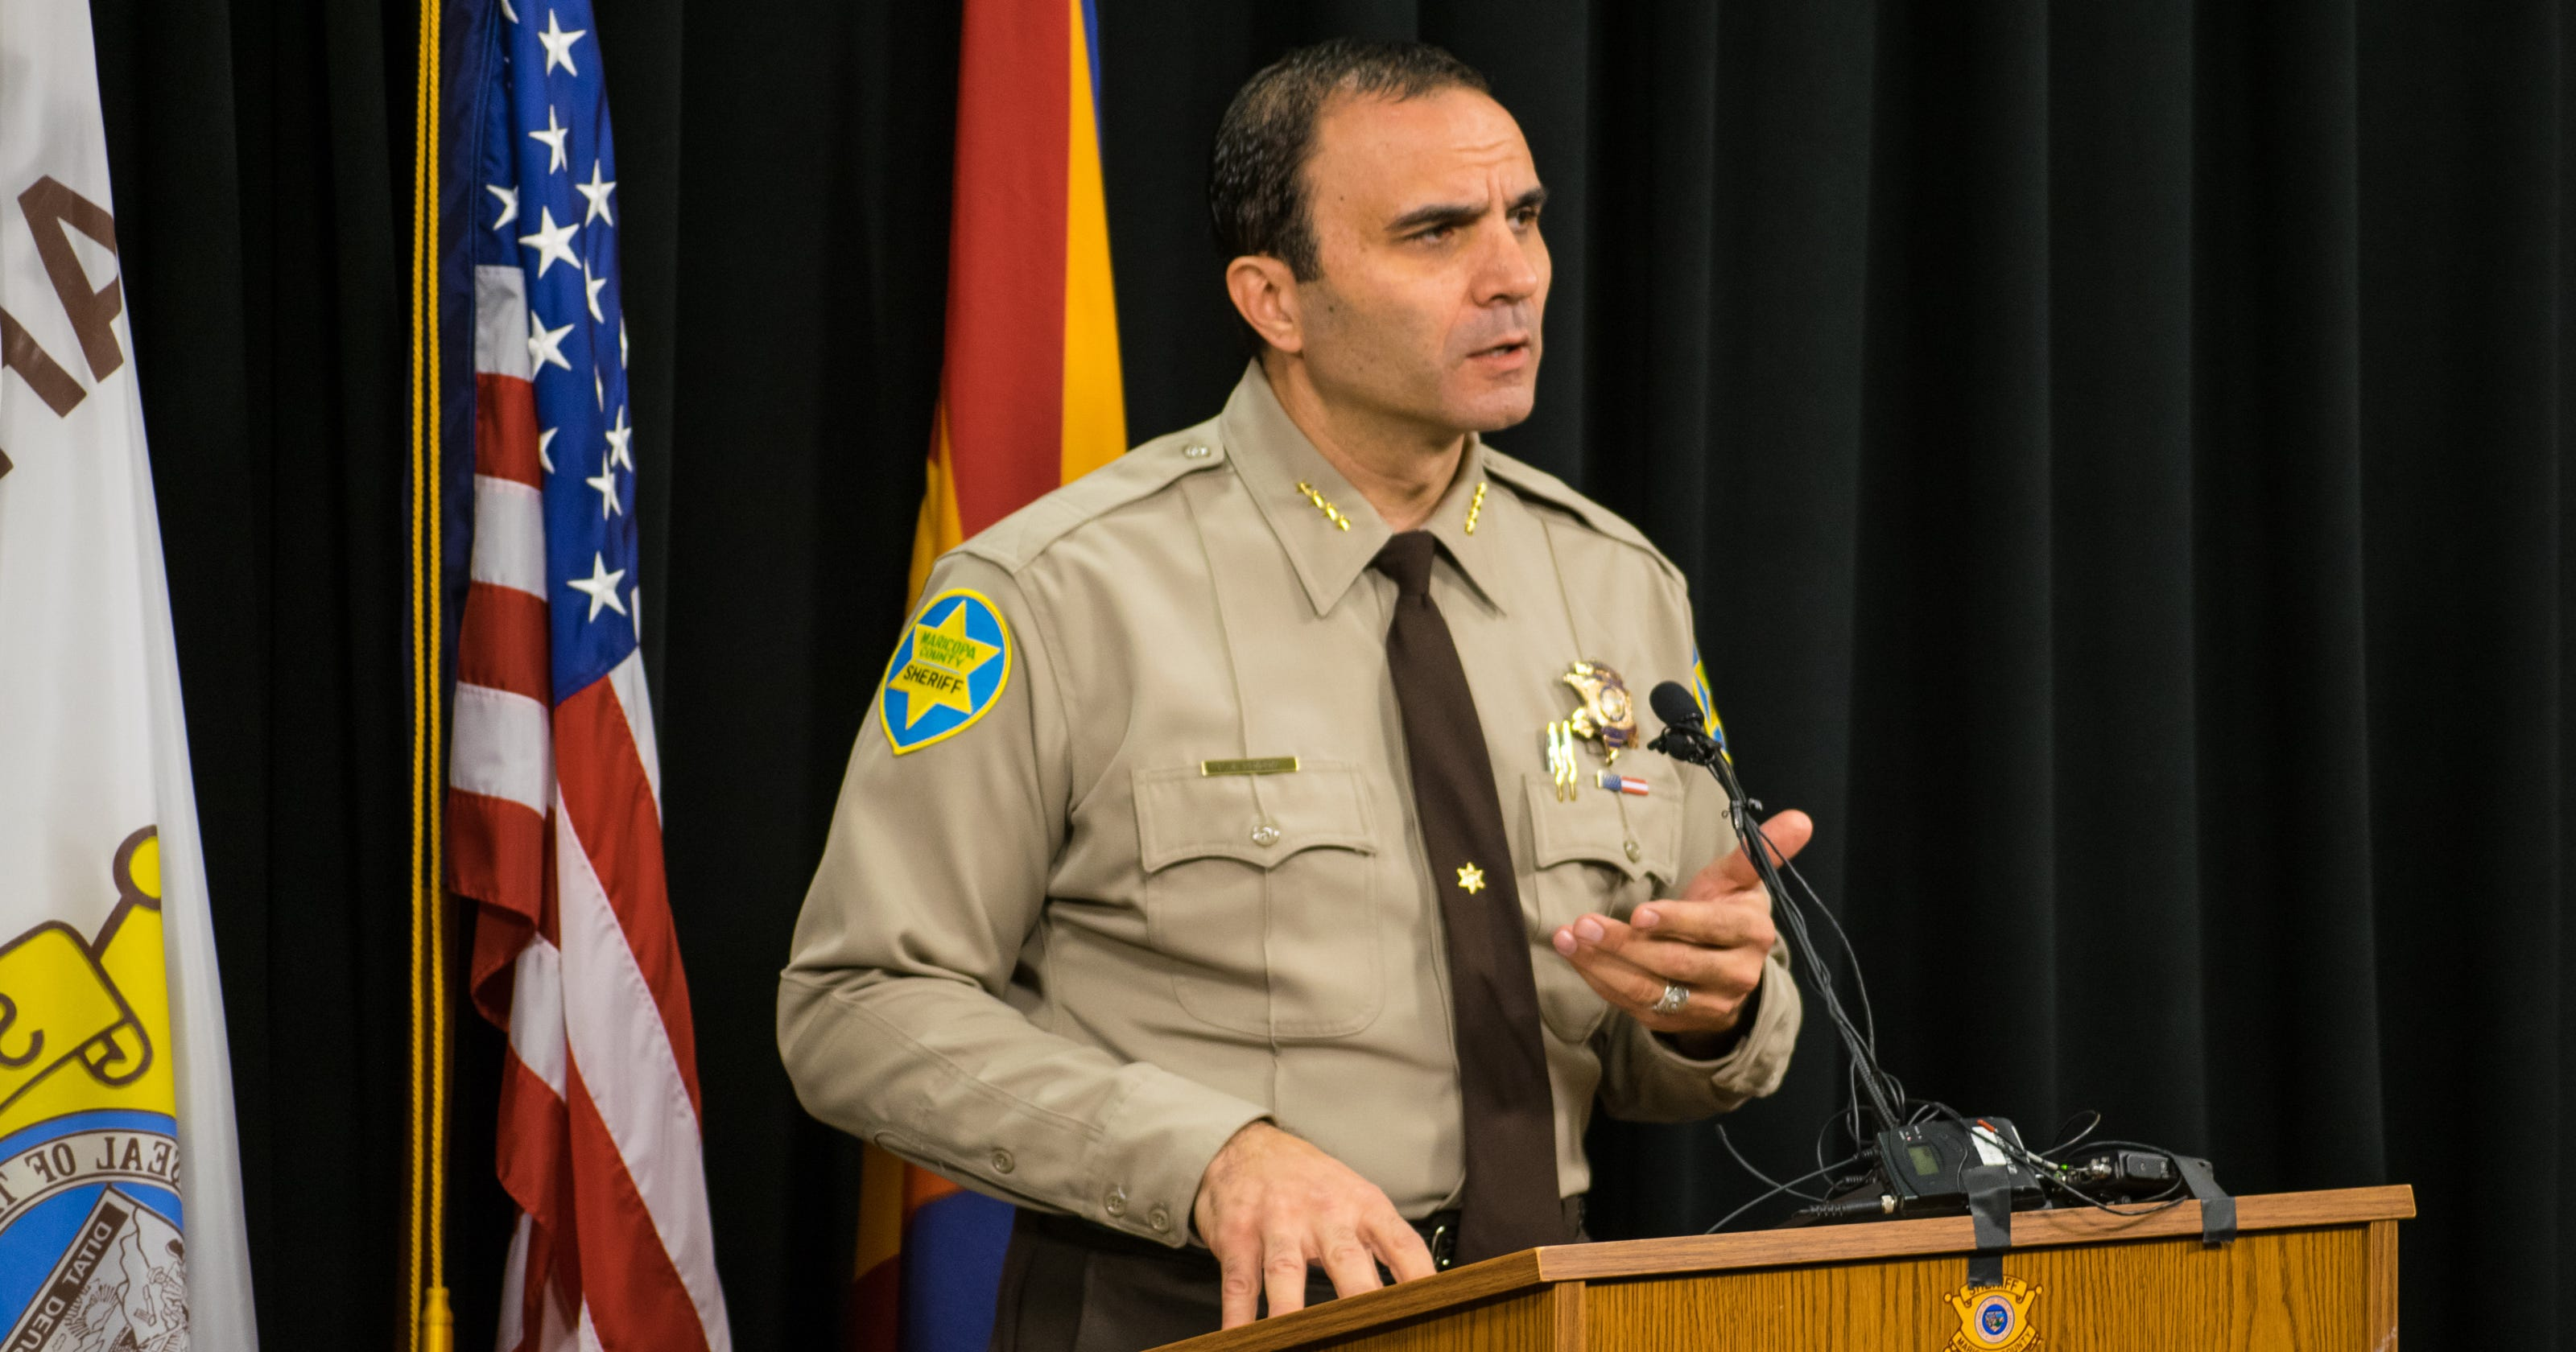 Maricopa County Sheriff's Office reverses course, will allow ICE